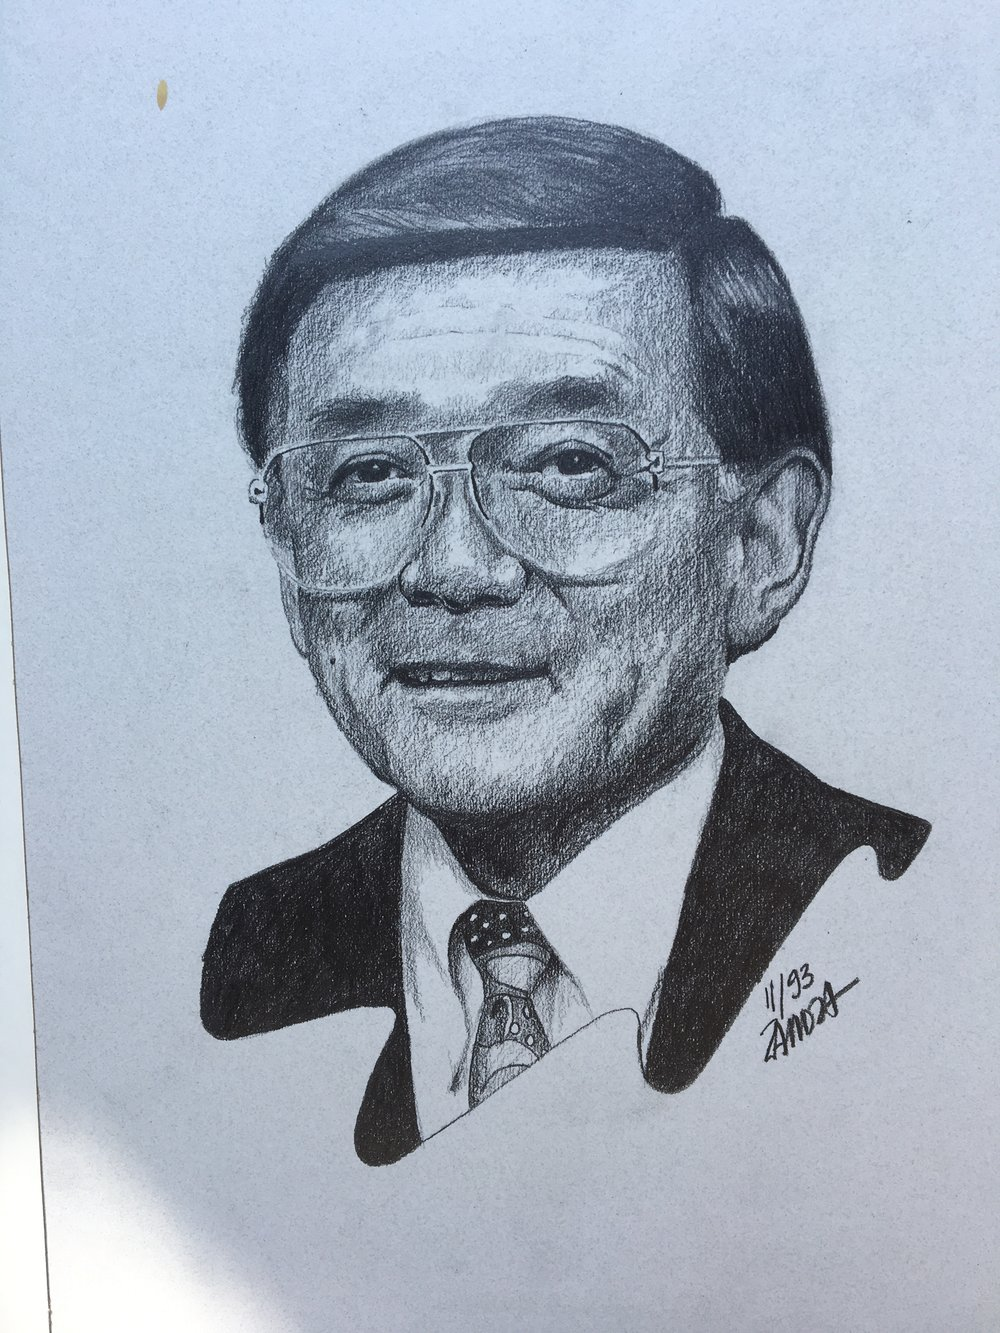 "Zamora, Gil.  Norman Y. Mineta, Mayor of San Jose . 1993. Graphite on gray paper, 13"" x 18"". Private collection."